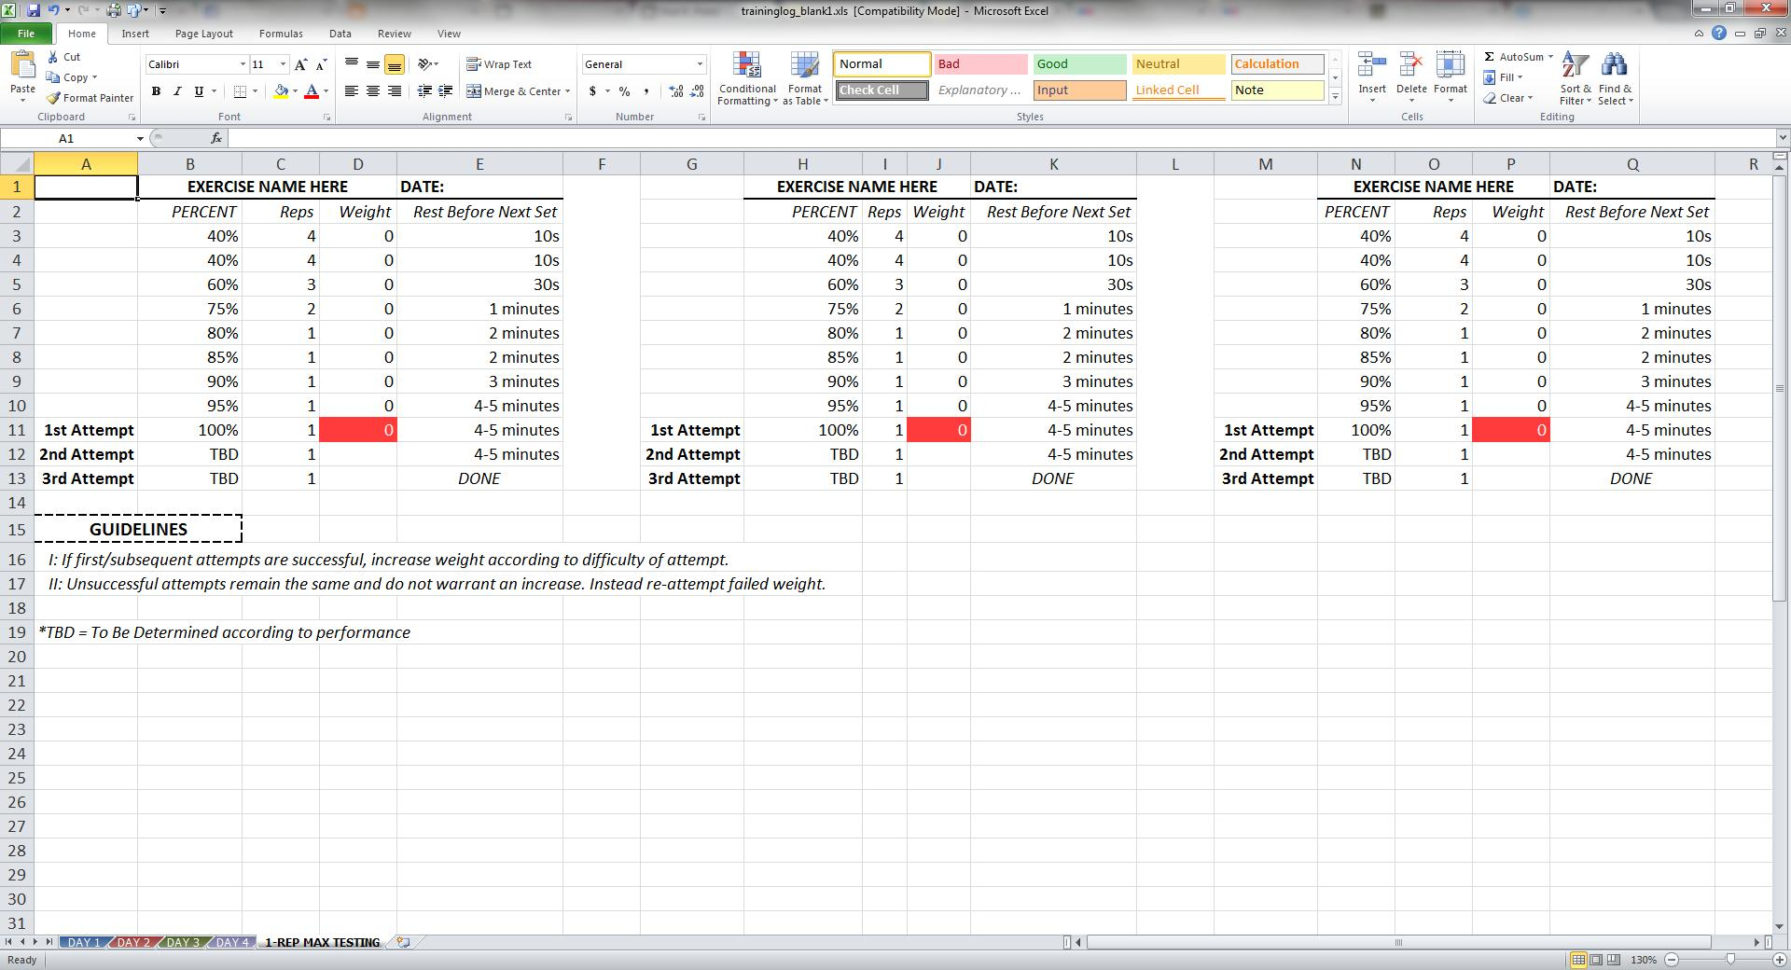 Human Resources Excel Spreadsheet Templates Throughout Free Annual Leave Spreadsheet Excel Template Training Spreadsheet